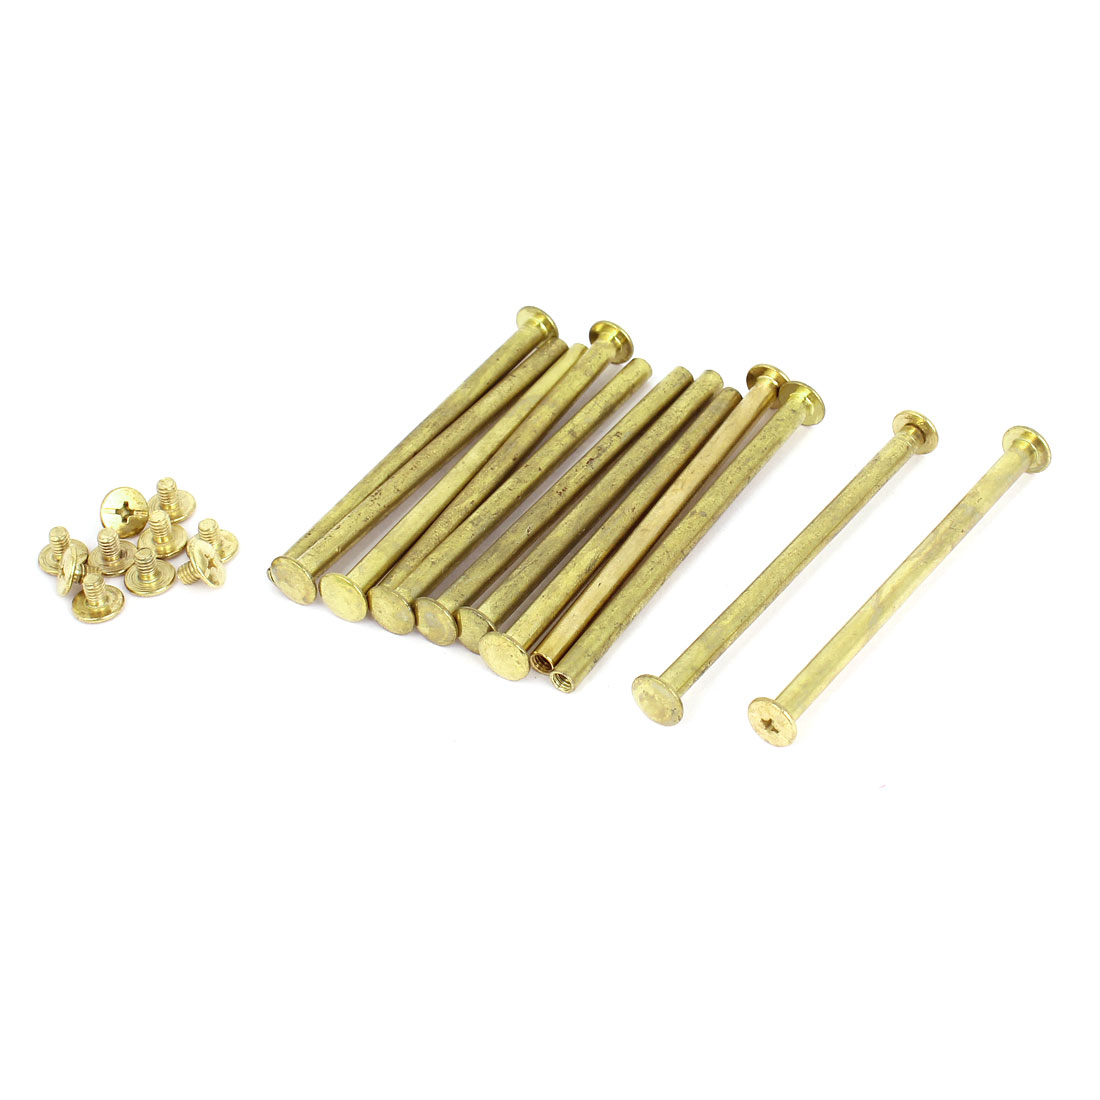 Brass Plated 5x80mm Binding Chicago Screw Post 12pcs for Leather Scrapbook